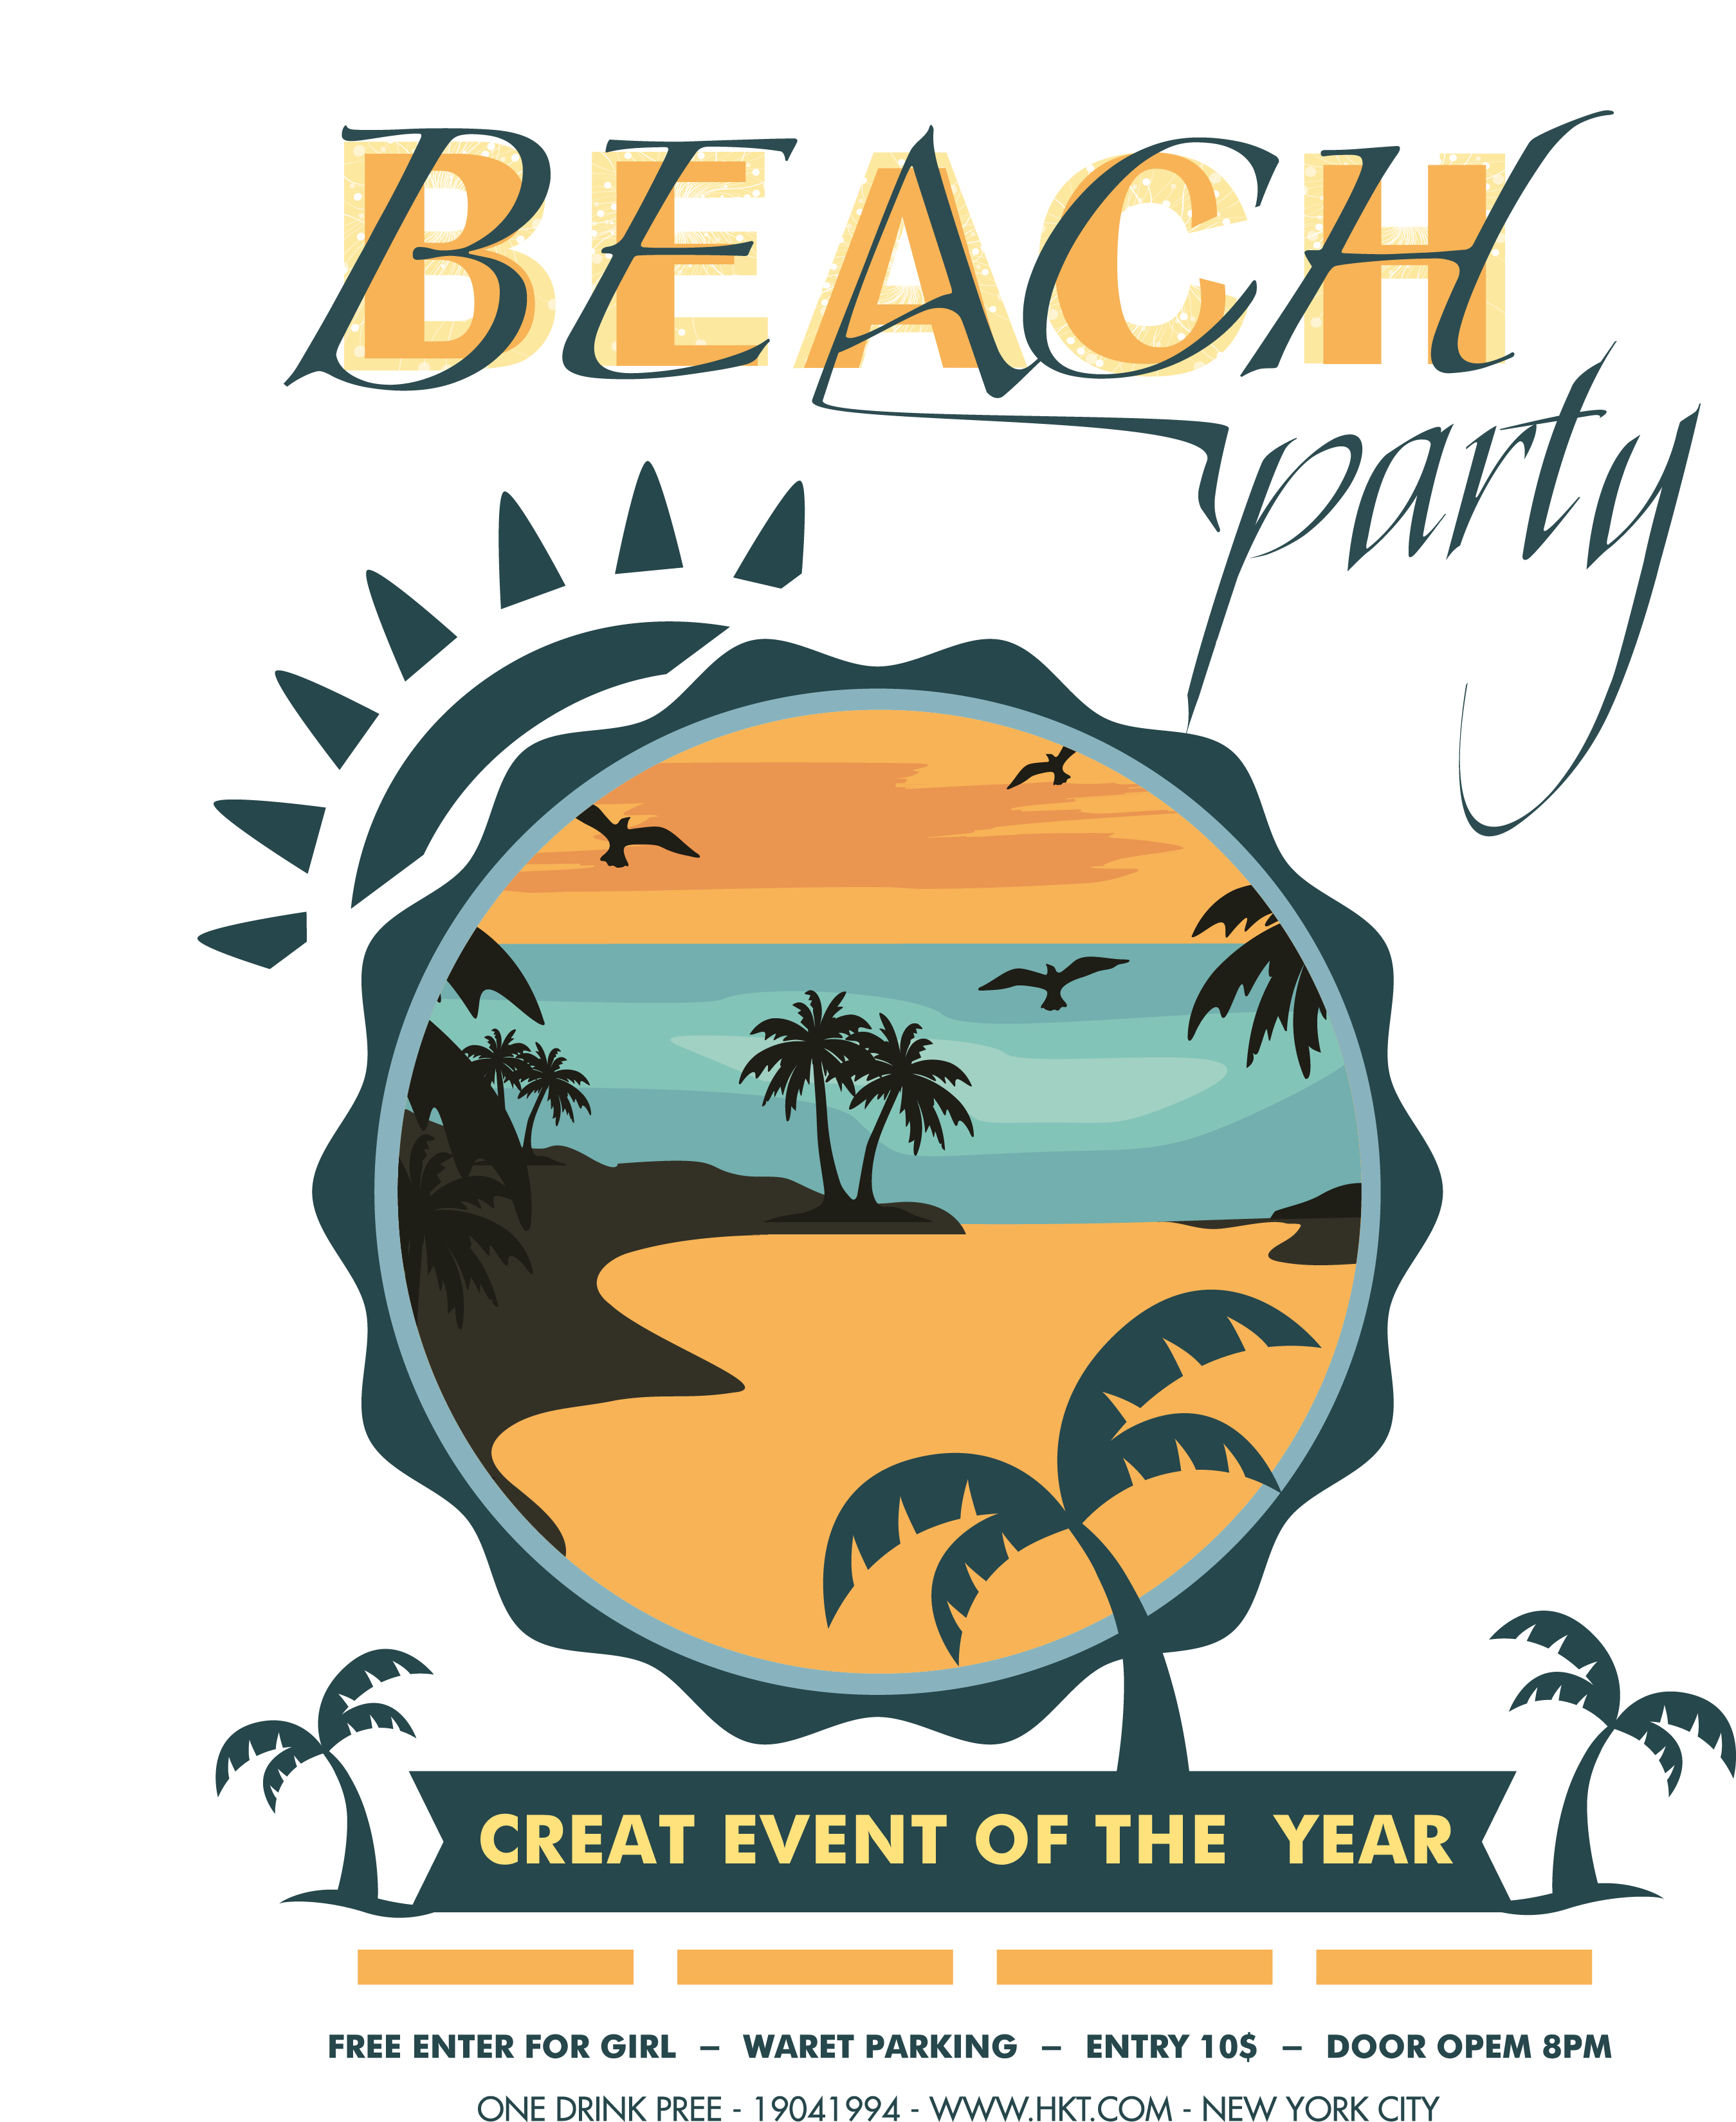 Beach Party PNG Image.